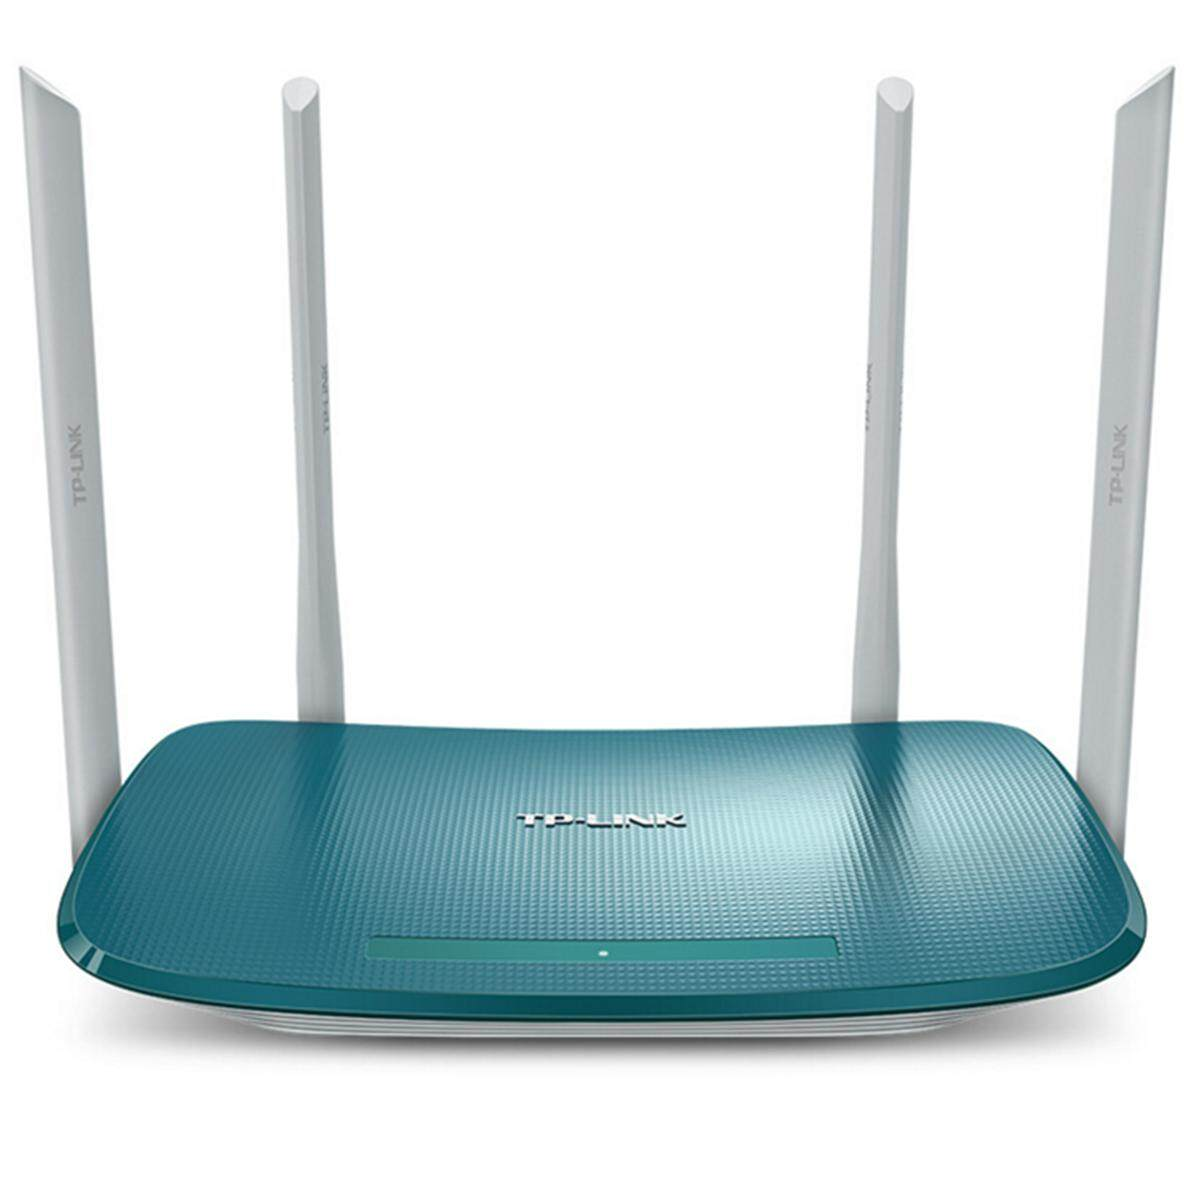 Toko 1200Mbps 2 4 5G Dual Band Wireless Range Extender Wifi Repeater Router 4 Antenna Intl Terdekat